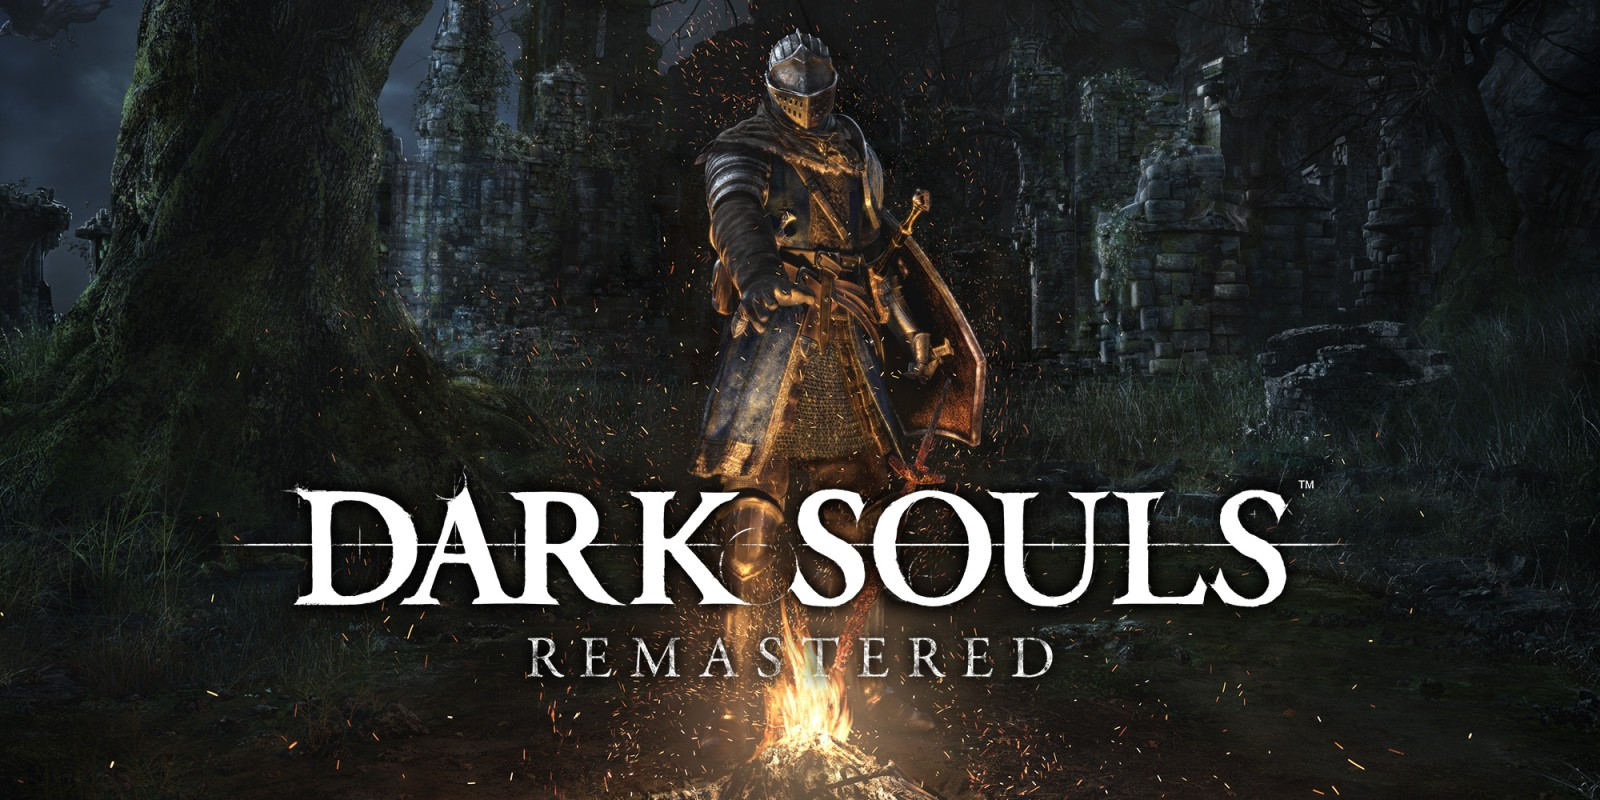 Today's Best Game Deals: Dark Souls Remastered $24, Devil May Cry 5 $40, more